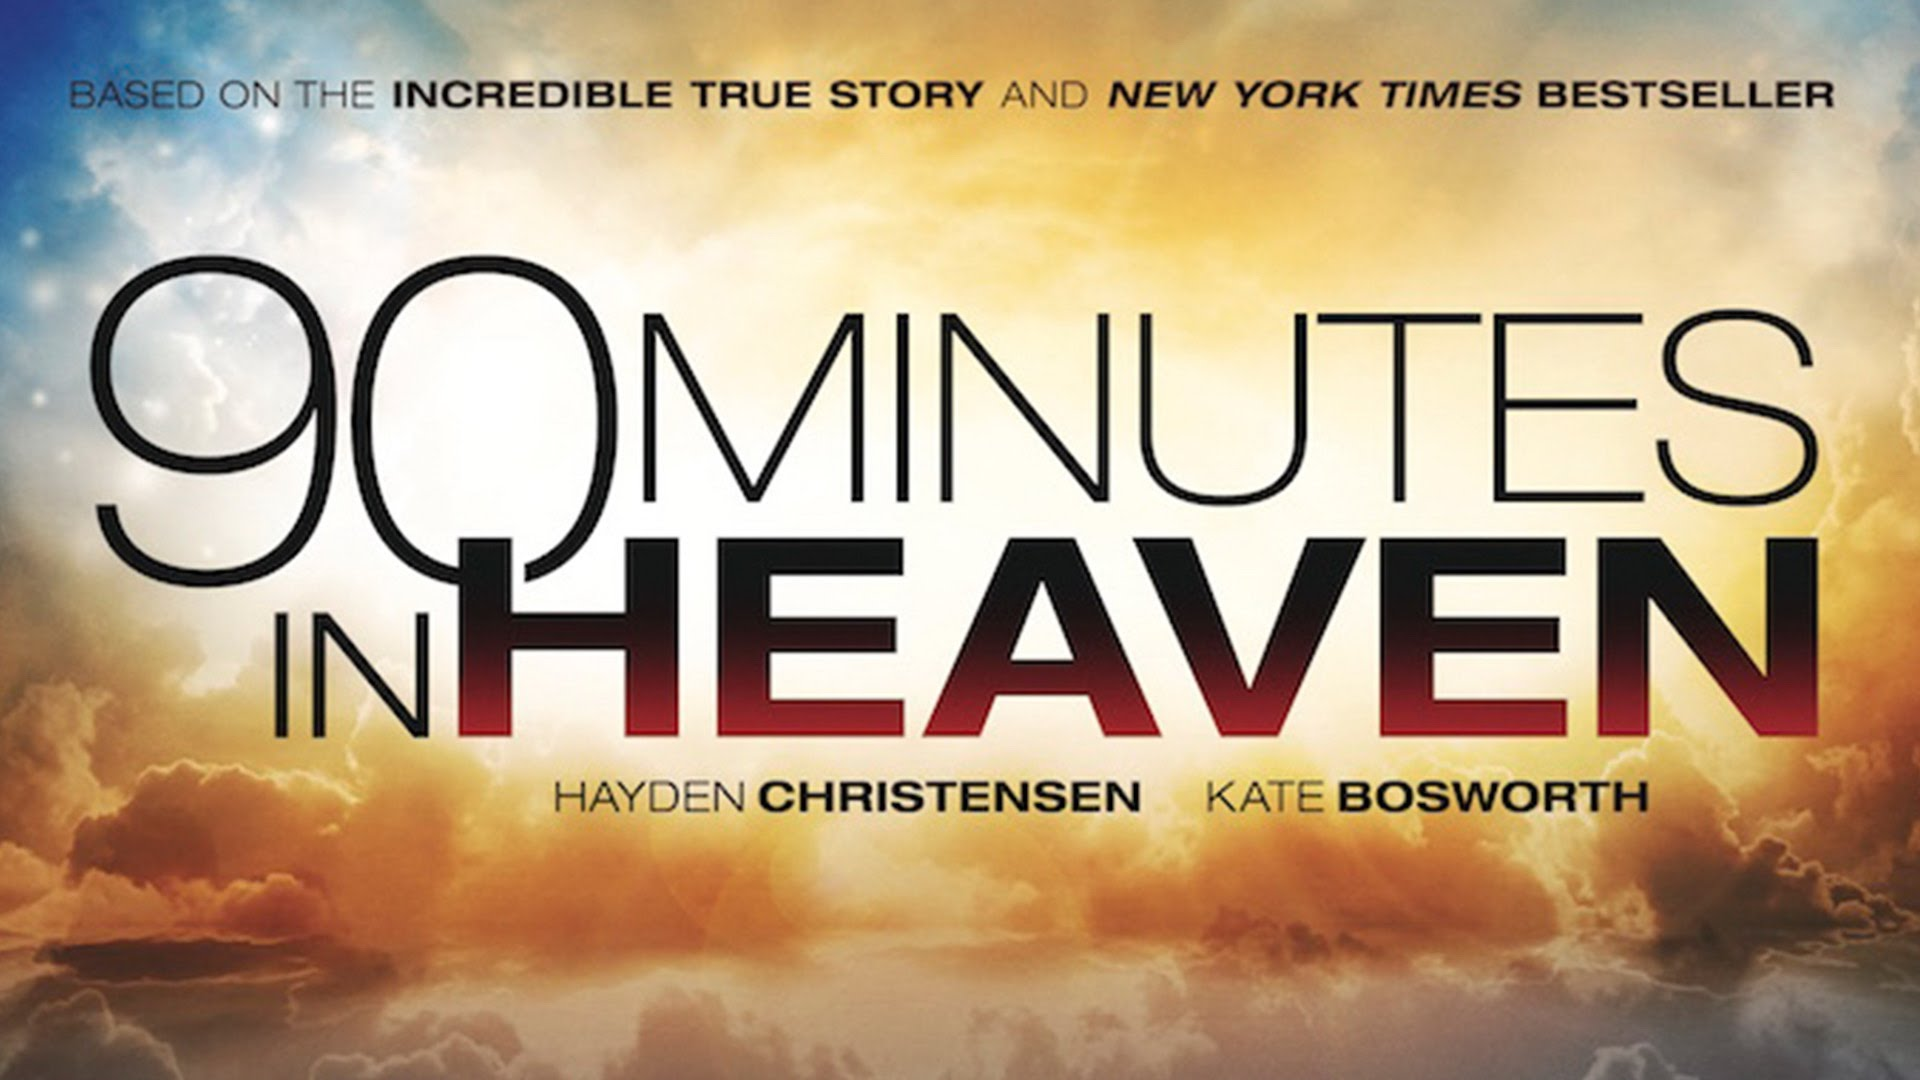 90 Minutes In Heaven wallpapers, Movie, HQ 90 Minutes In